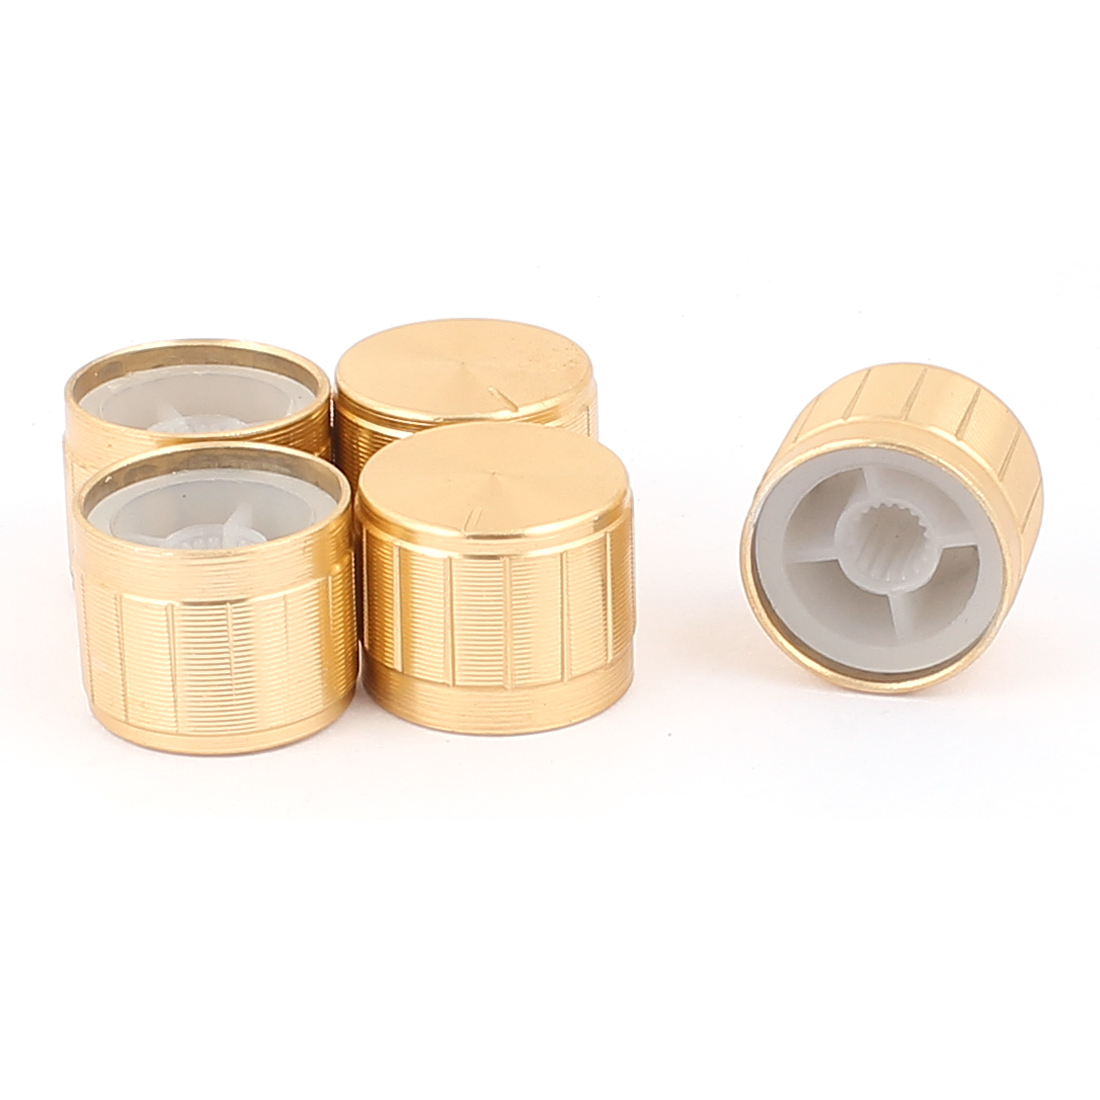 5 Pcs 21mm x 6mm Aluminium Alloy Potentiometer Control Knob Mini Cap Knurled Button Gold Tone